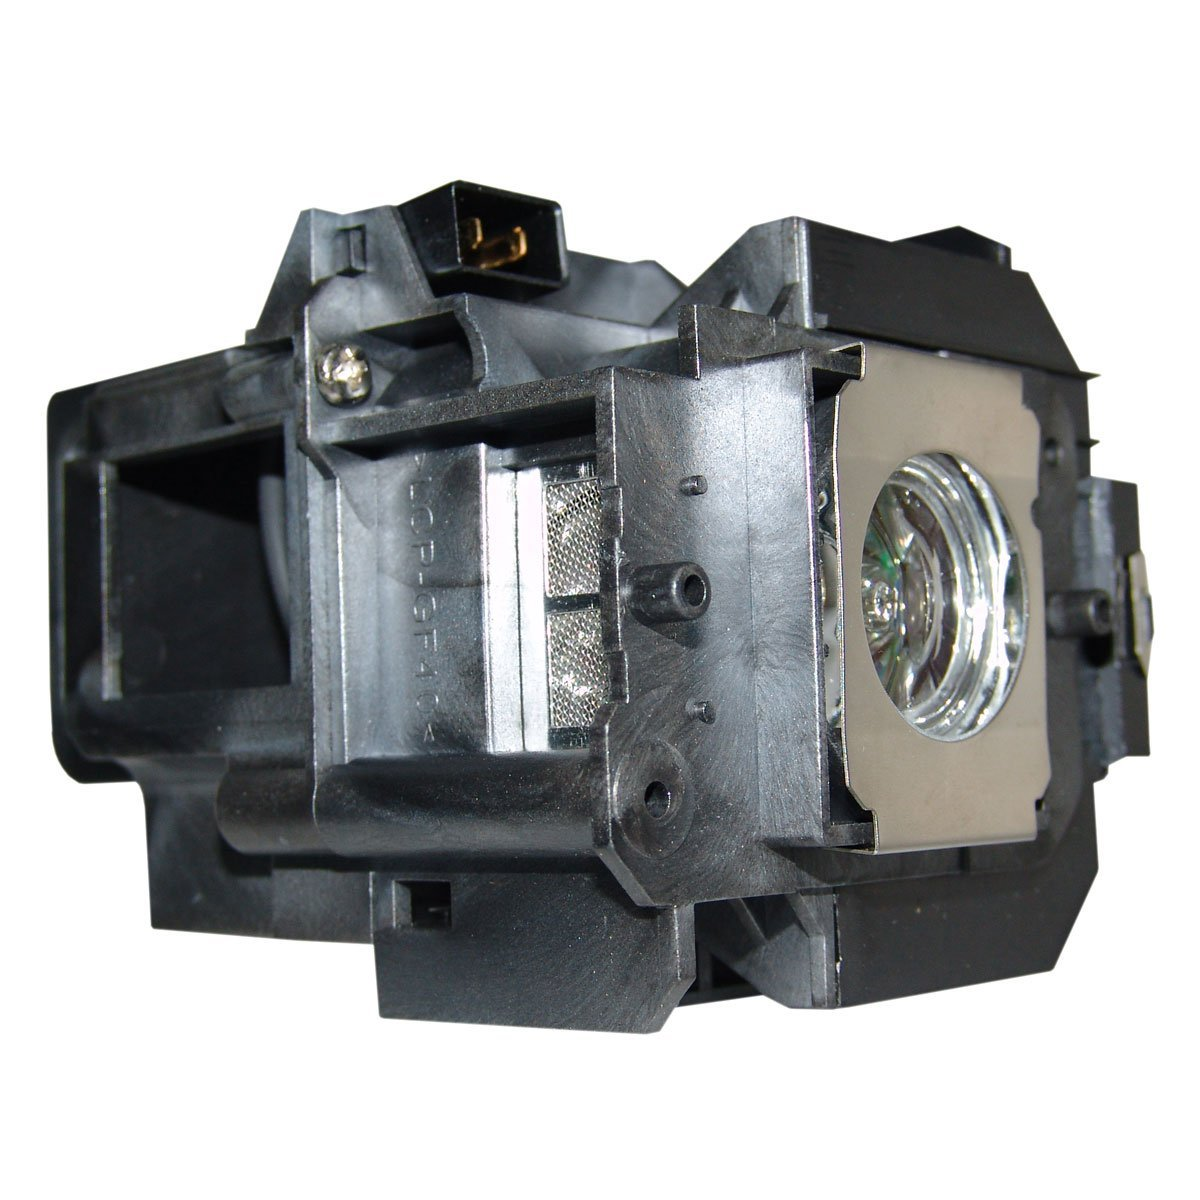 ELPLP59 V13H010L59 for Epson EH-R4000 EH-R1000 EH-R2000 Projector Bulb Lamp With housing  rivaldy rivaldy r 2031 010